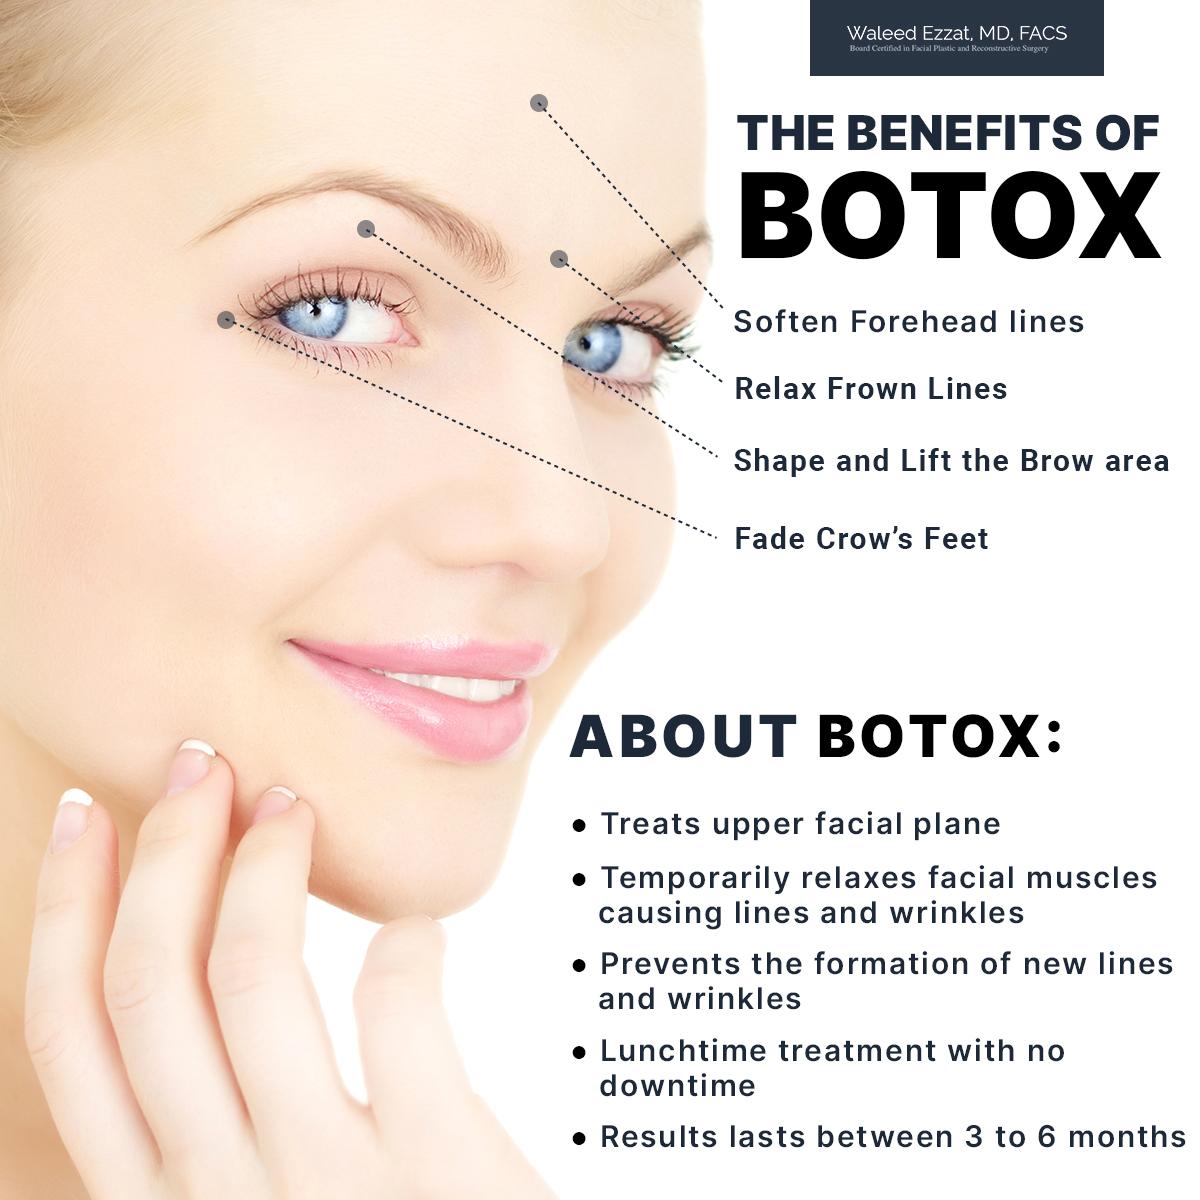 The Benefits of Botox [Infographic]